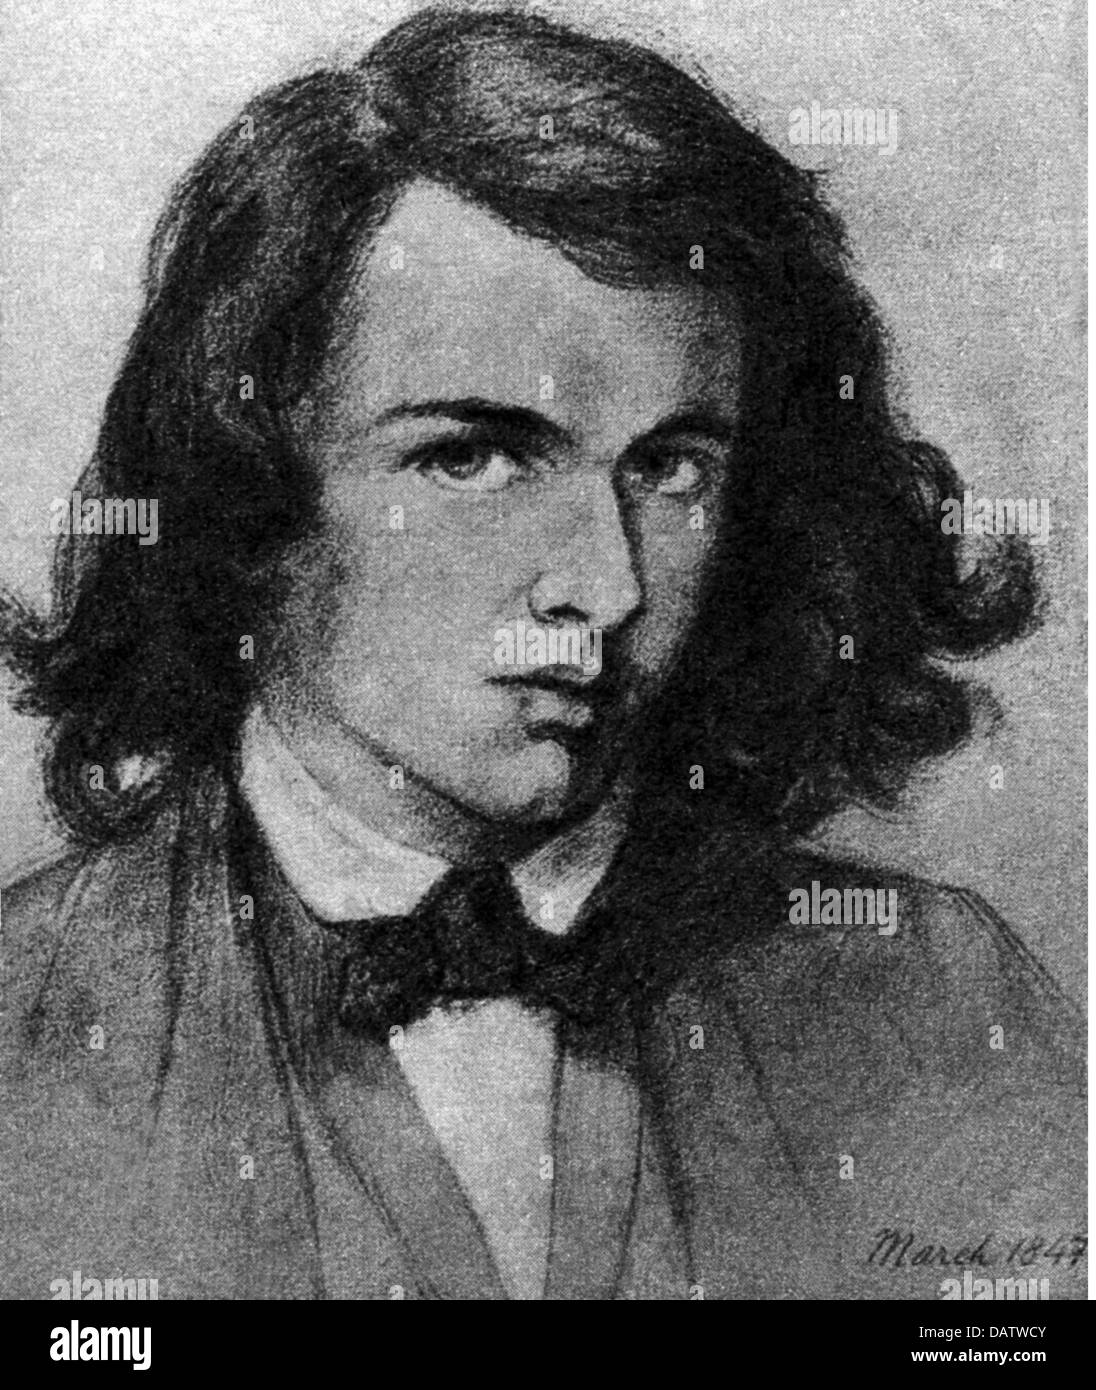 Rossetti, Dante Gabriel, 12.5.1828 - 9.4.1882, British artist (painter), poet, portrait, drawing by March, 1847, - Stock Image